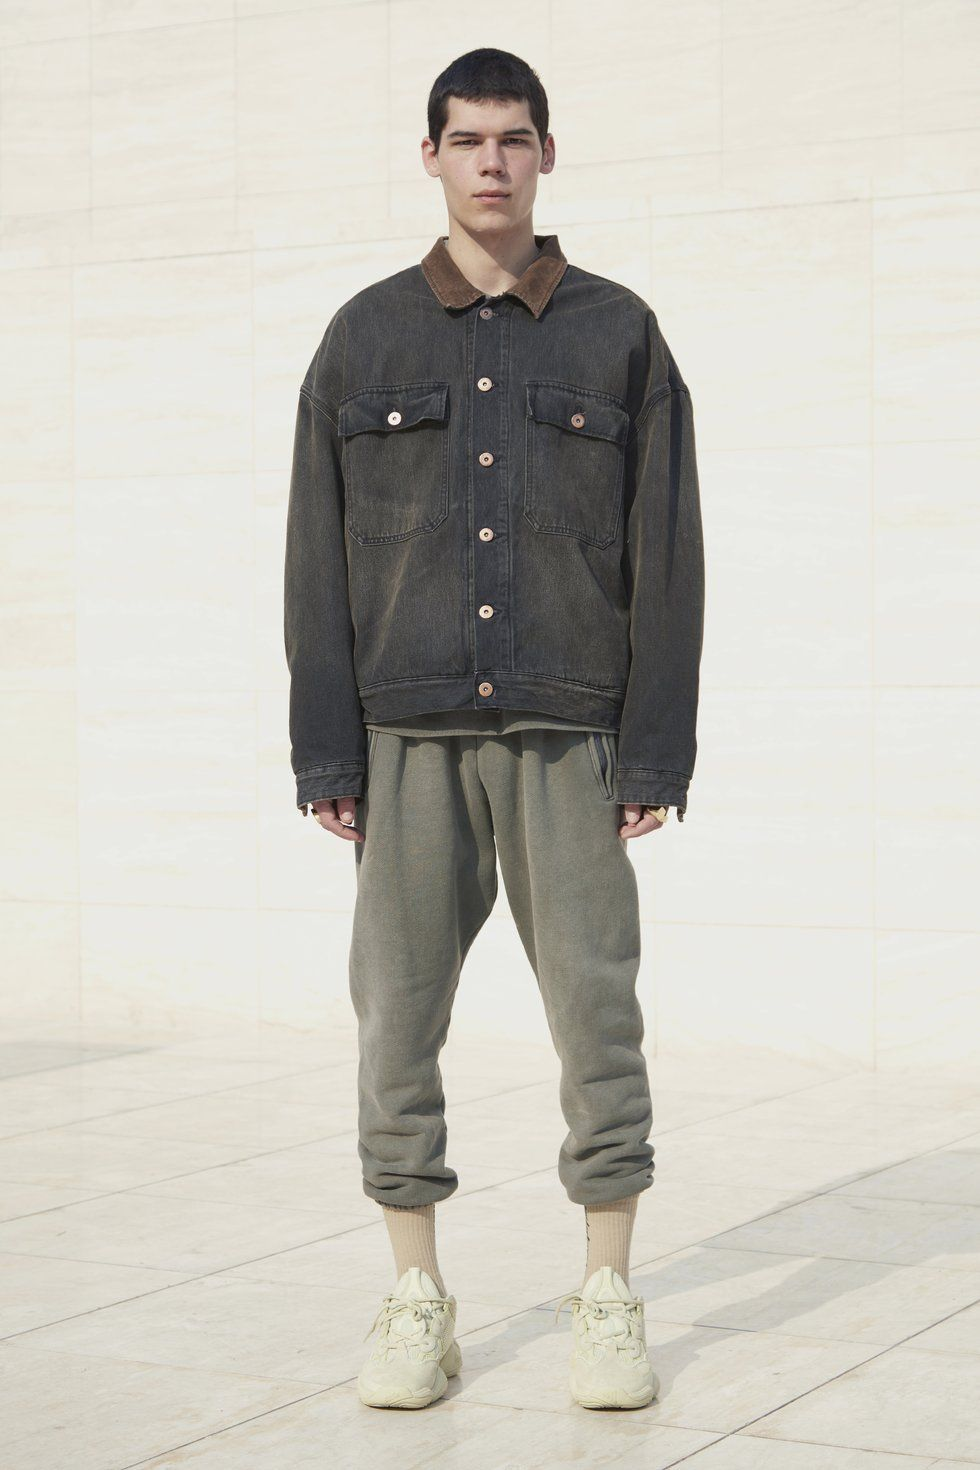 YEEZY Flannel Lined Canvas Jacket | Blå | Jeansjackor